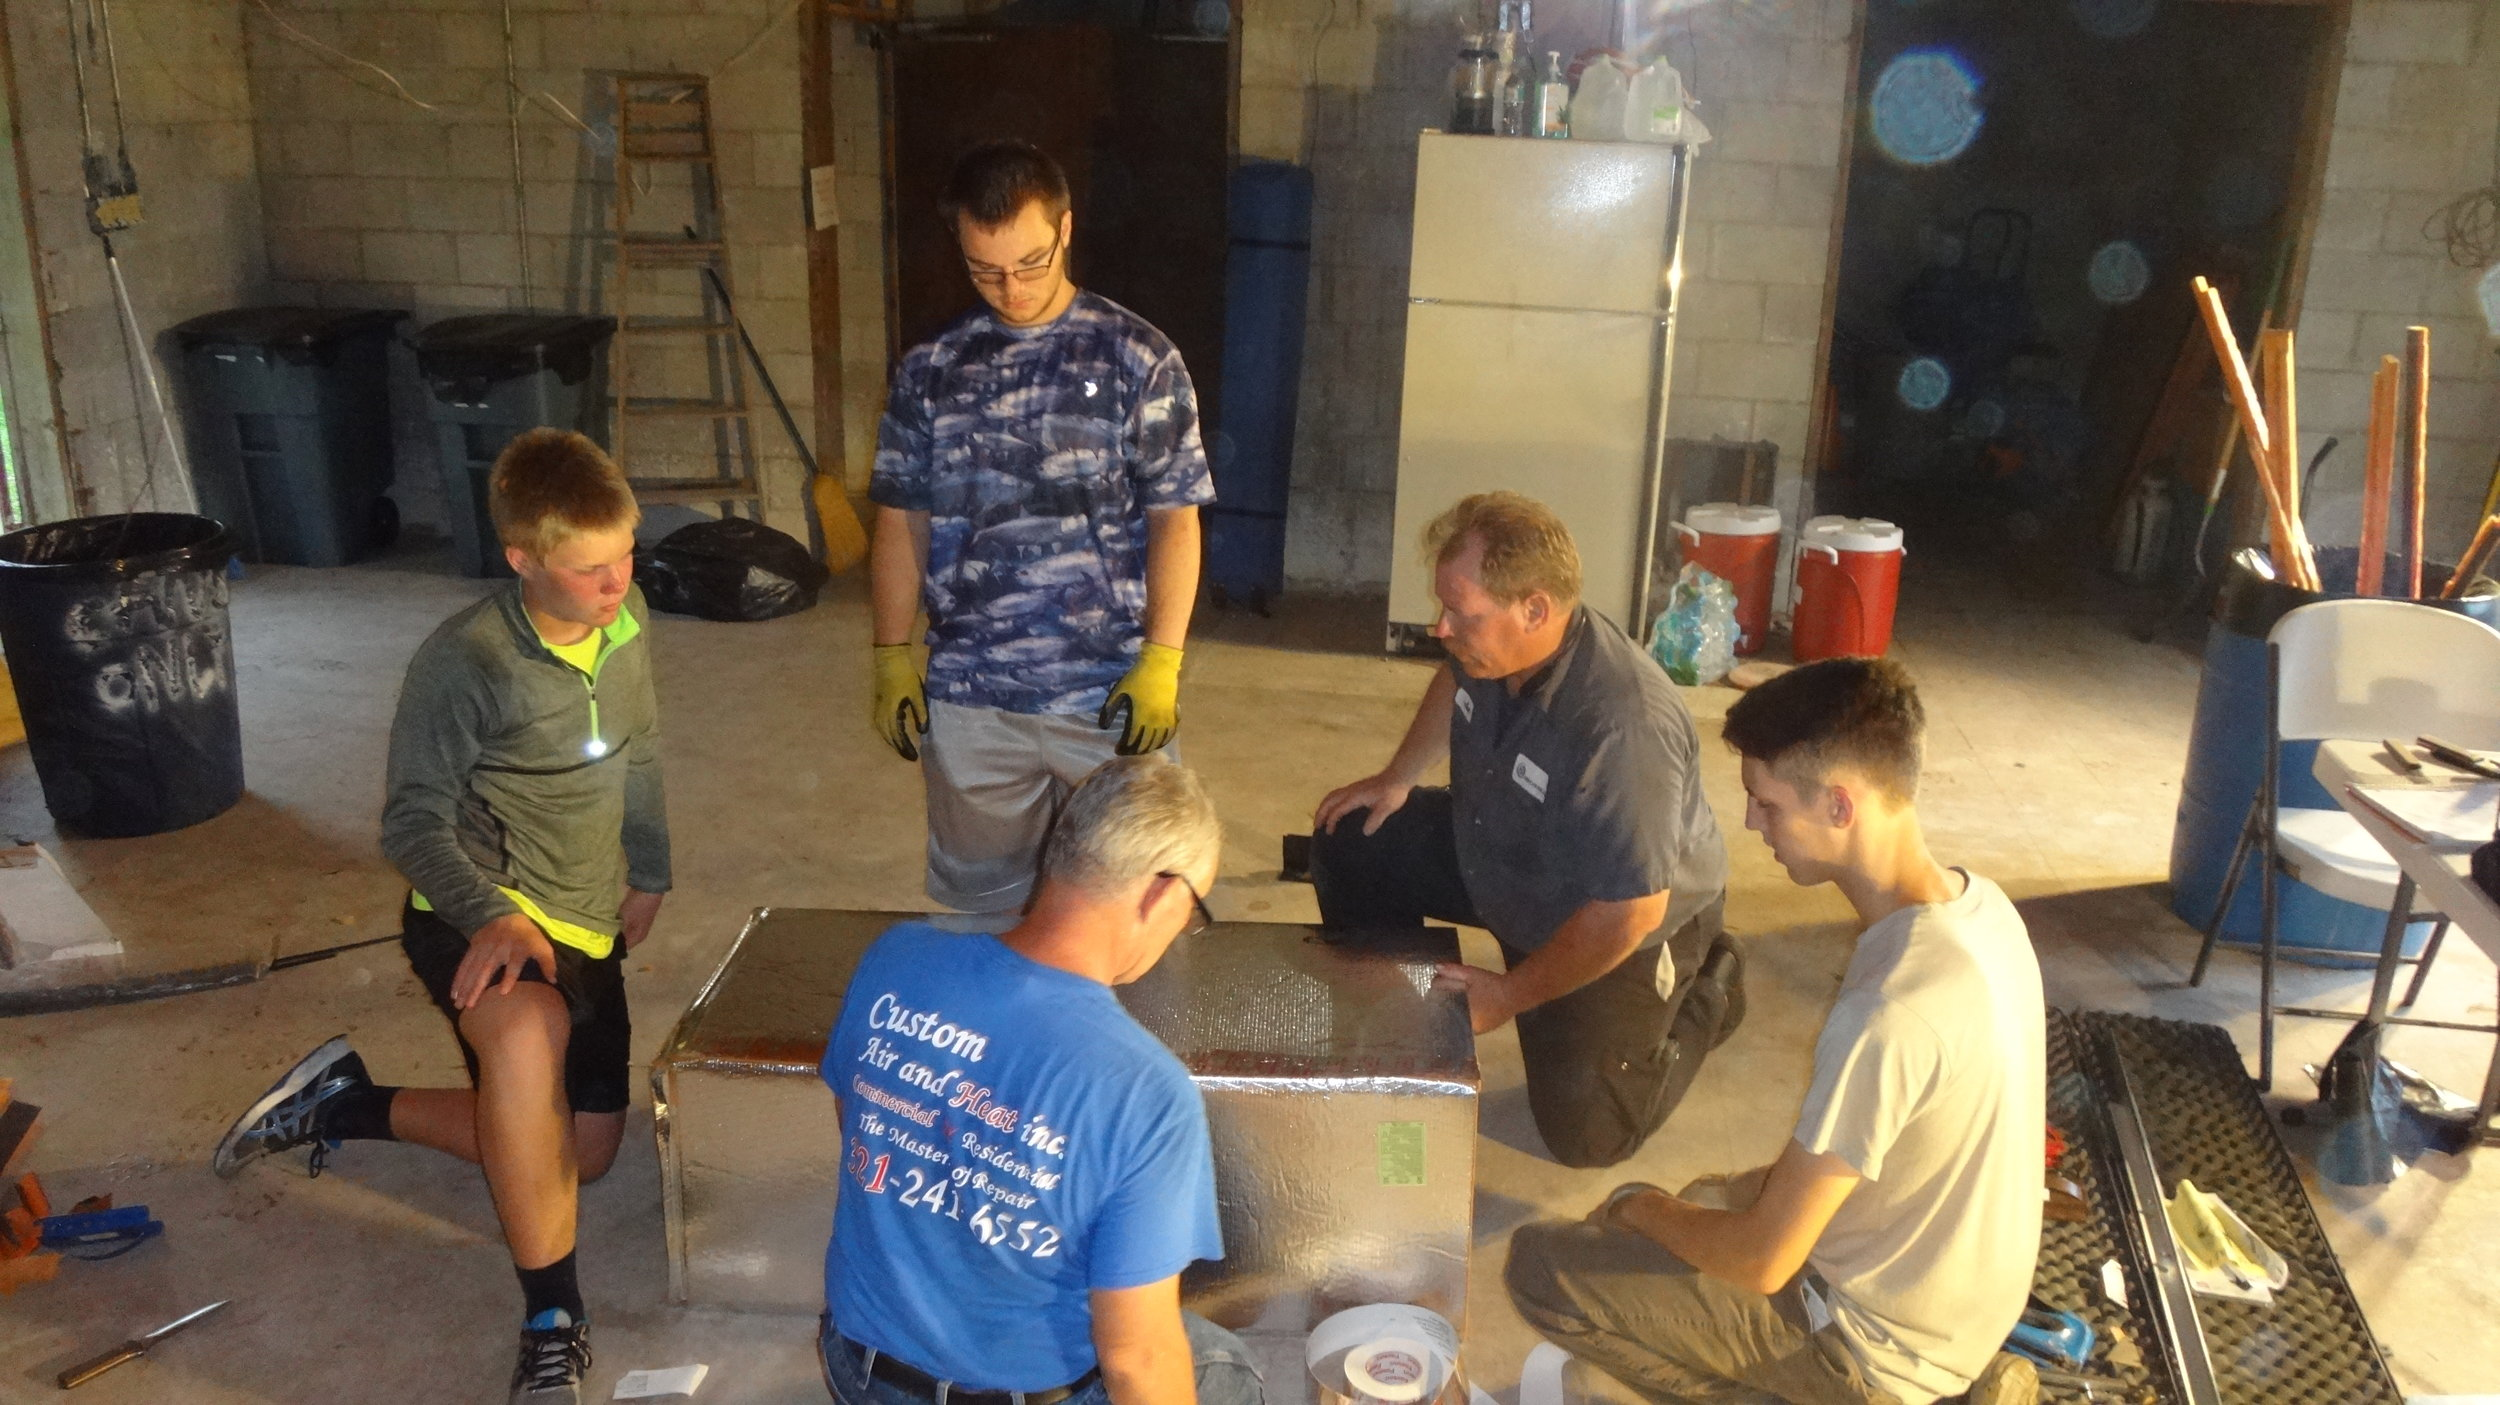 Mike, being a long time Boy Scout Leader took the time to teach our Boy Scouts how to form and install duct work.